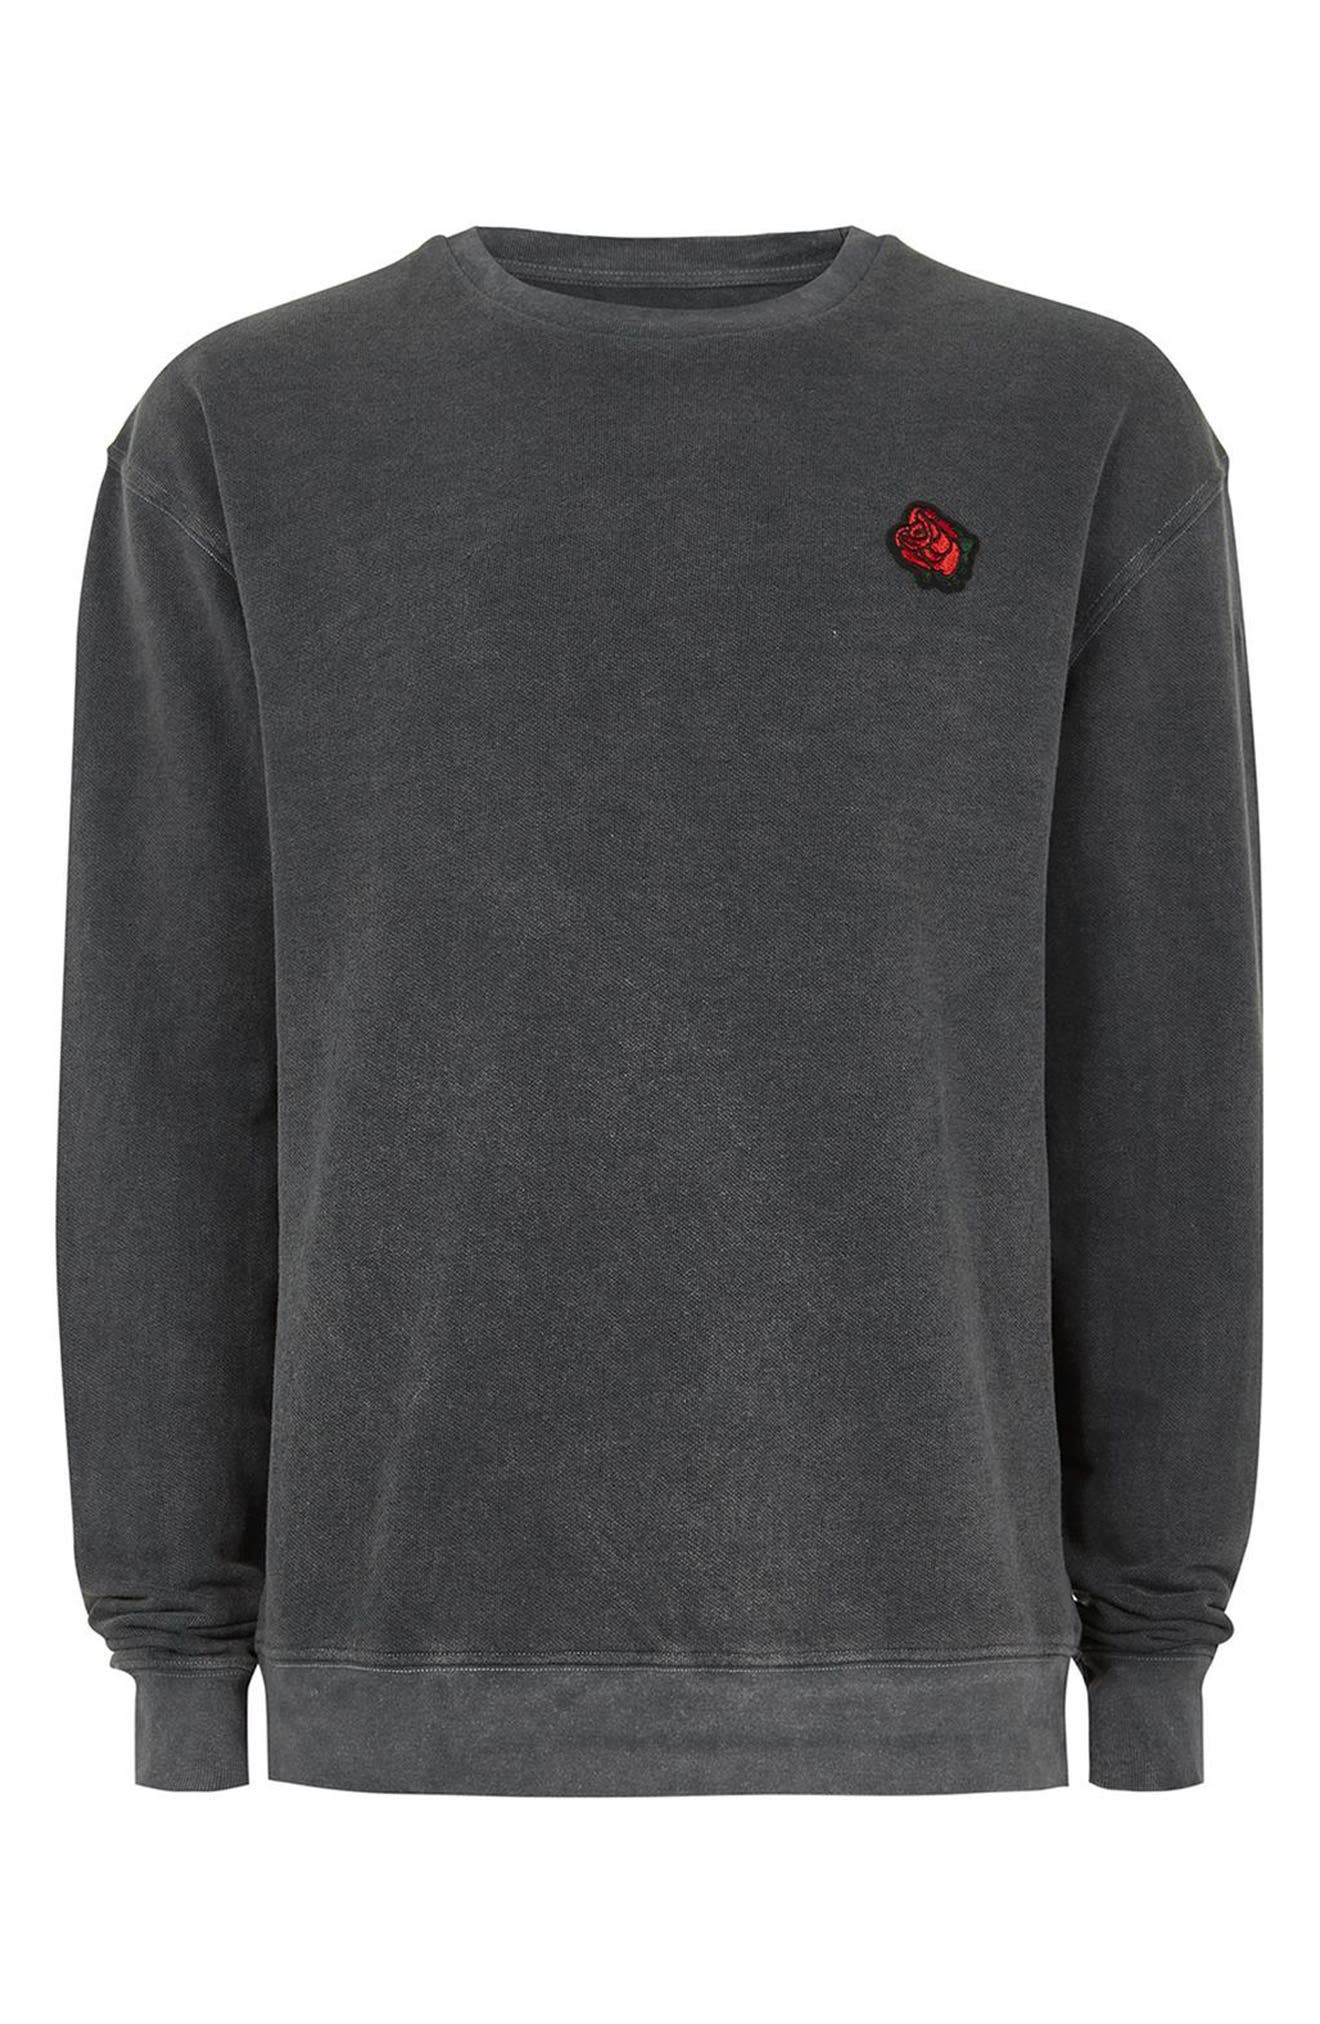 Percy Rose Embroidered Sweatshirt,                             Alternate thumbnail 4, color,                             020